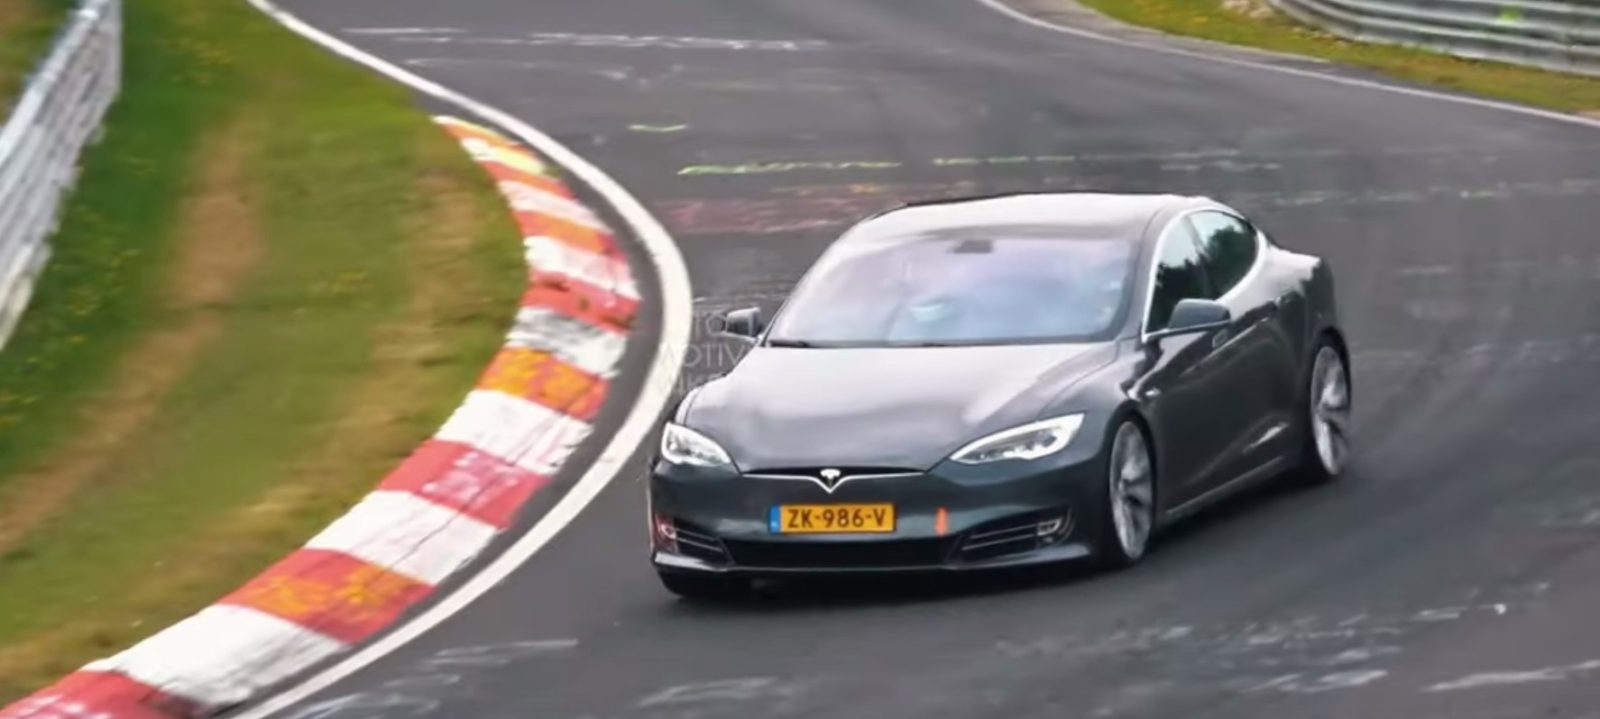 Watch Tesla's new Model S shred tires on Nürburgring racetrack